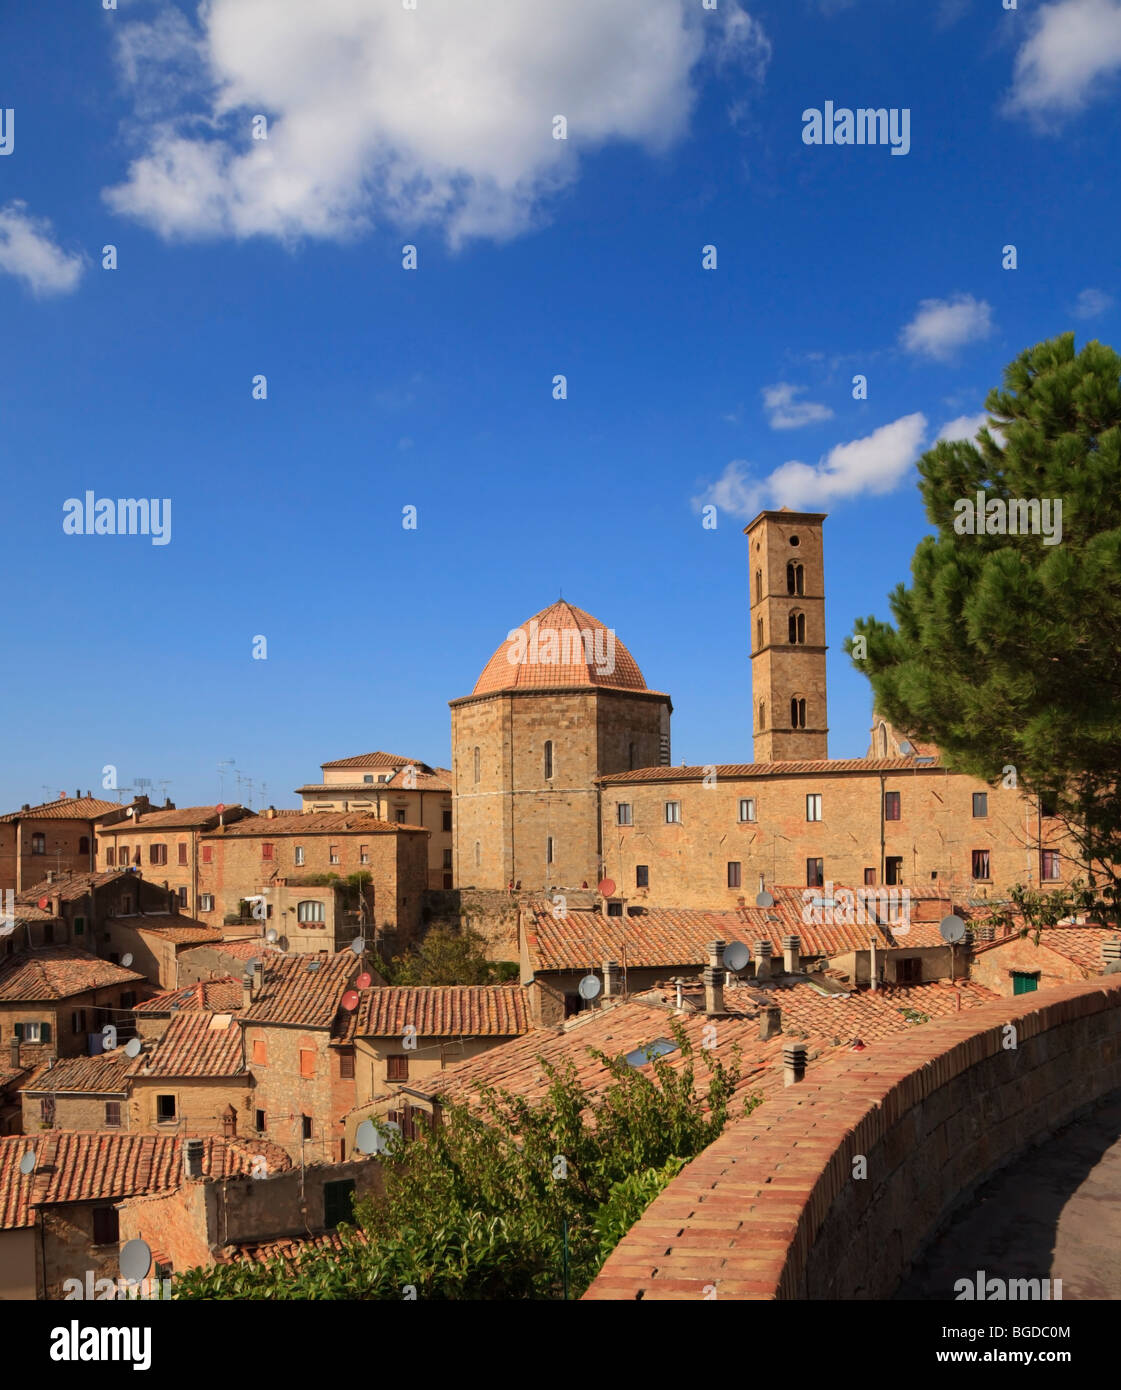 The Cathedral of Santa Maria Aussunta in Volterra Tuscany, Italy - Stock Image